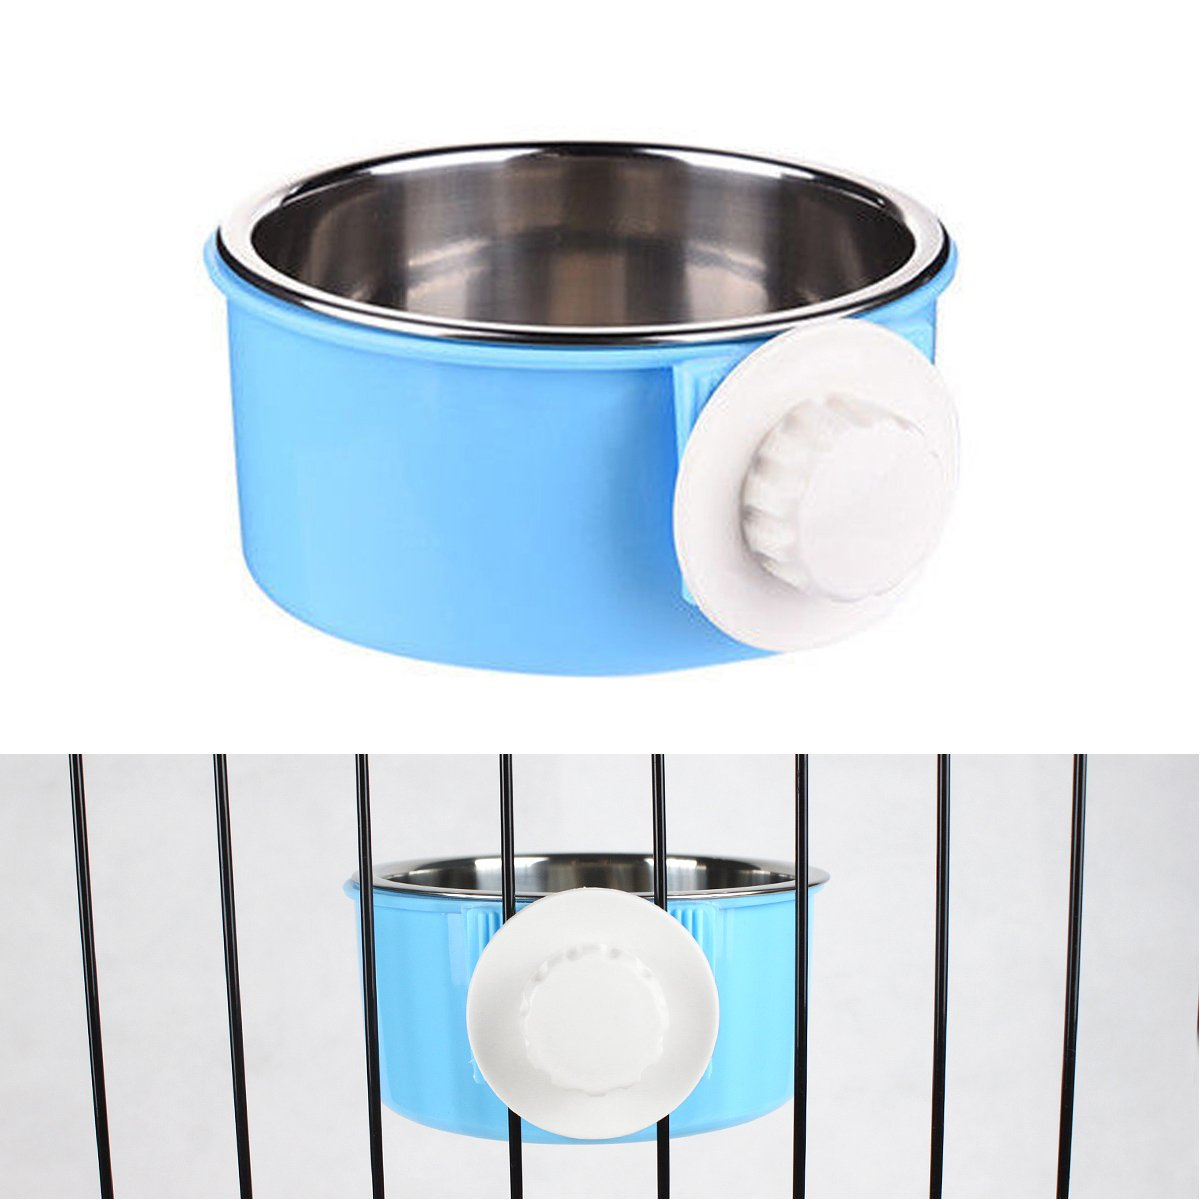 PETLESO Stainless Steel Bowl Dog Crate Bowl Water and Feed Bowl for Pet Dog Cat Bird with Dog Training Clicker - Blue